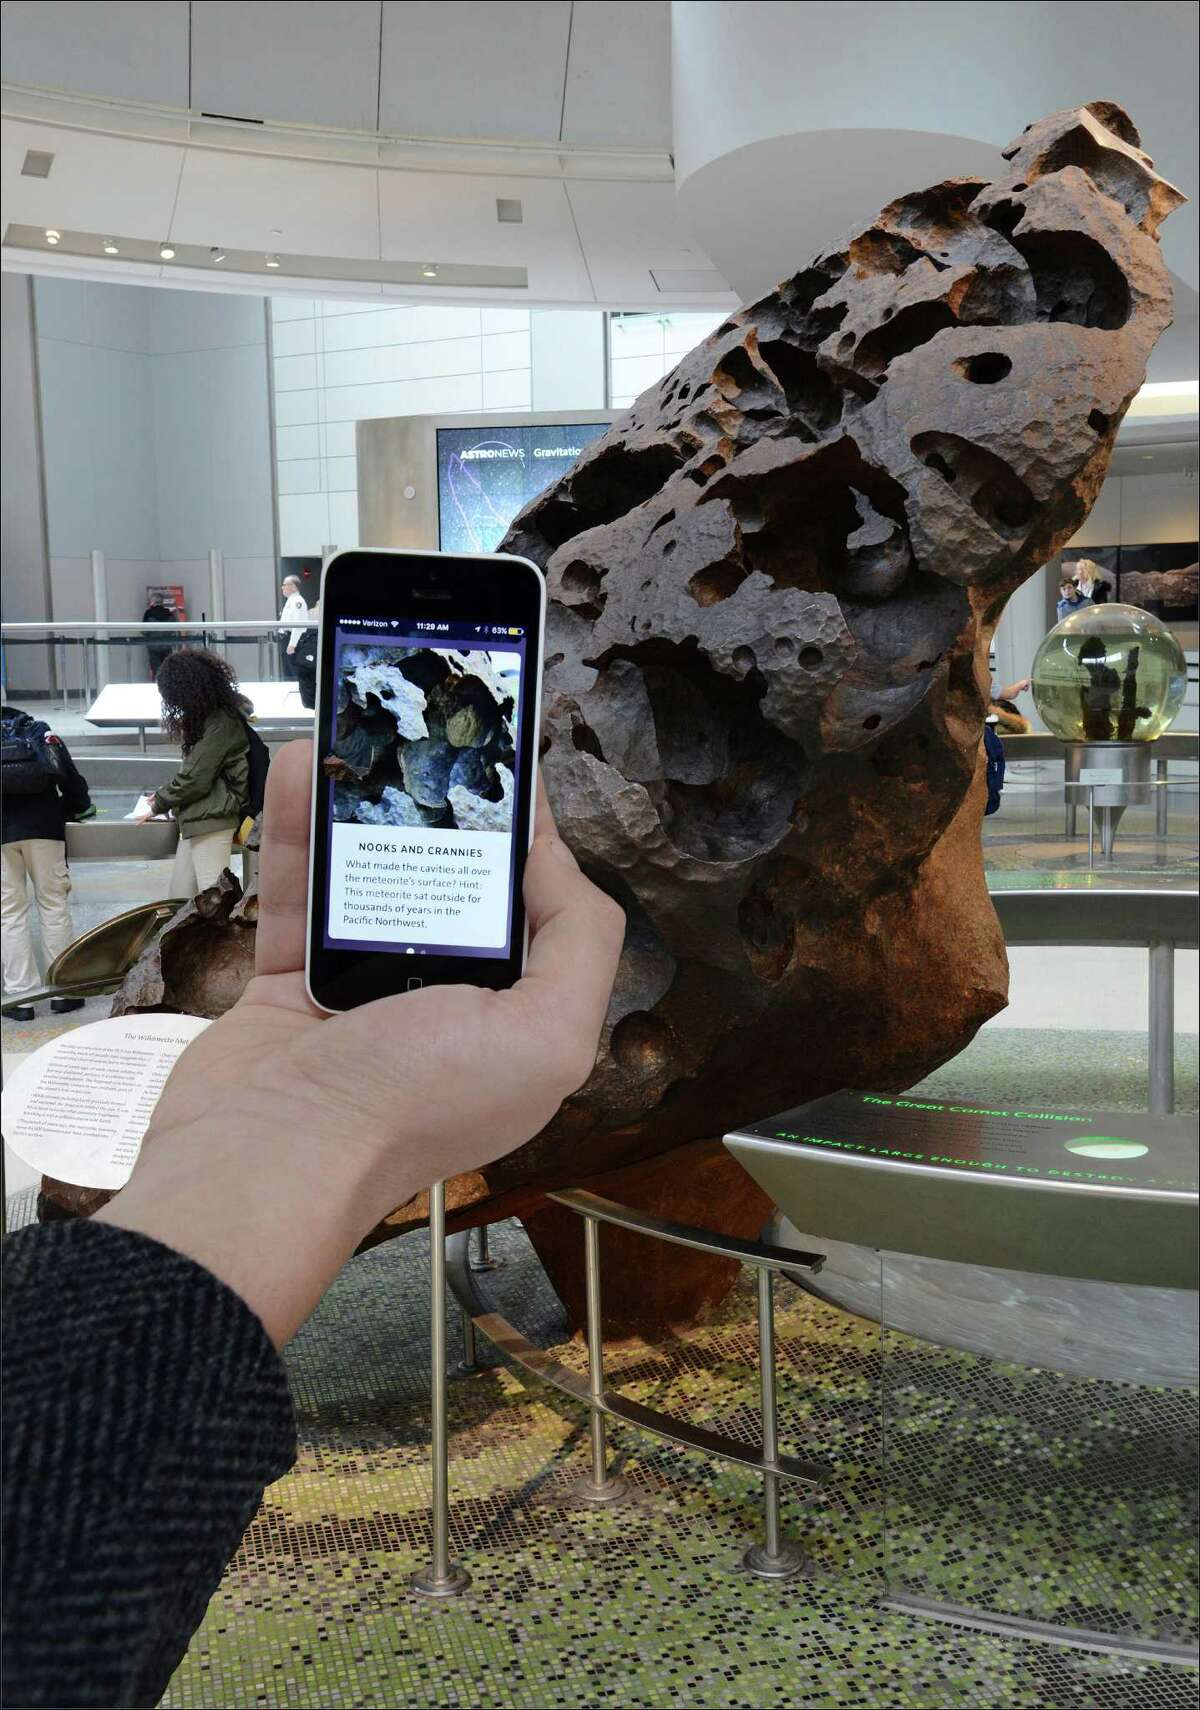 In this Dec. 12, 2016 photo provided by the American Museum of Natural History, a visitor uses the museum's flagship app Explorer which acts like a virtual curator, teaching visitors about the surprising facts and stories, near the Willamette Meteorite at the museum in New York. Museums working to present exciting and meaningful exhibits are increasingly relying on technology. (Roderick Mickens/American Museum of Natural History via AP) ORG XMIT: NYR305